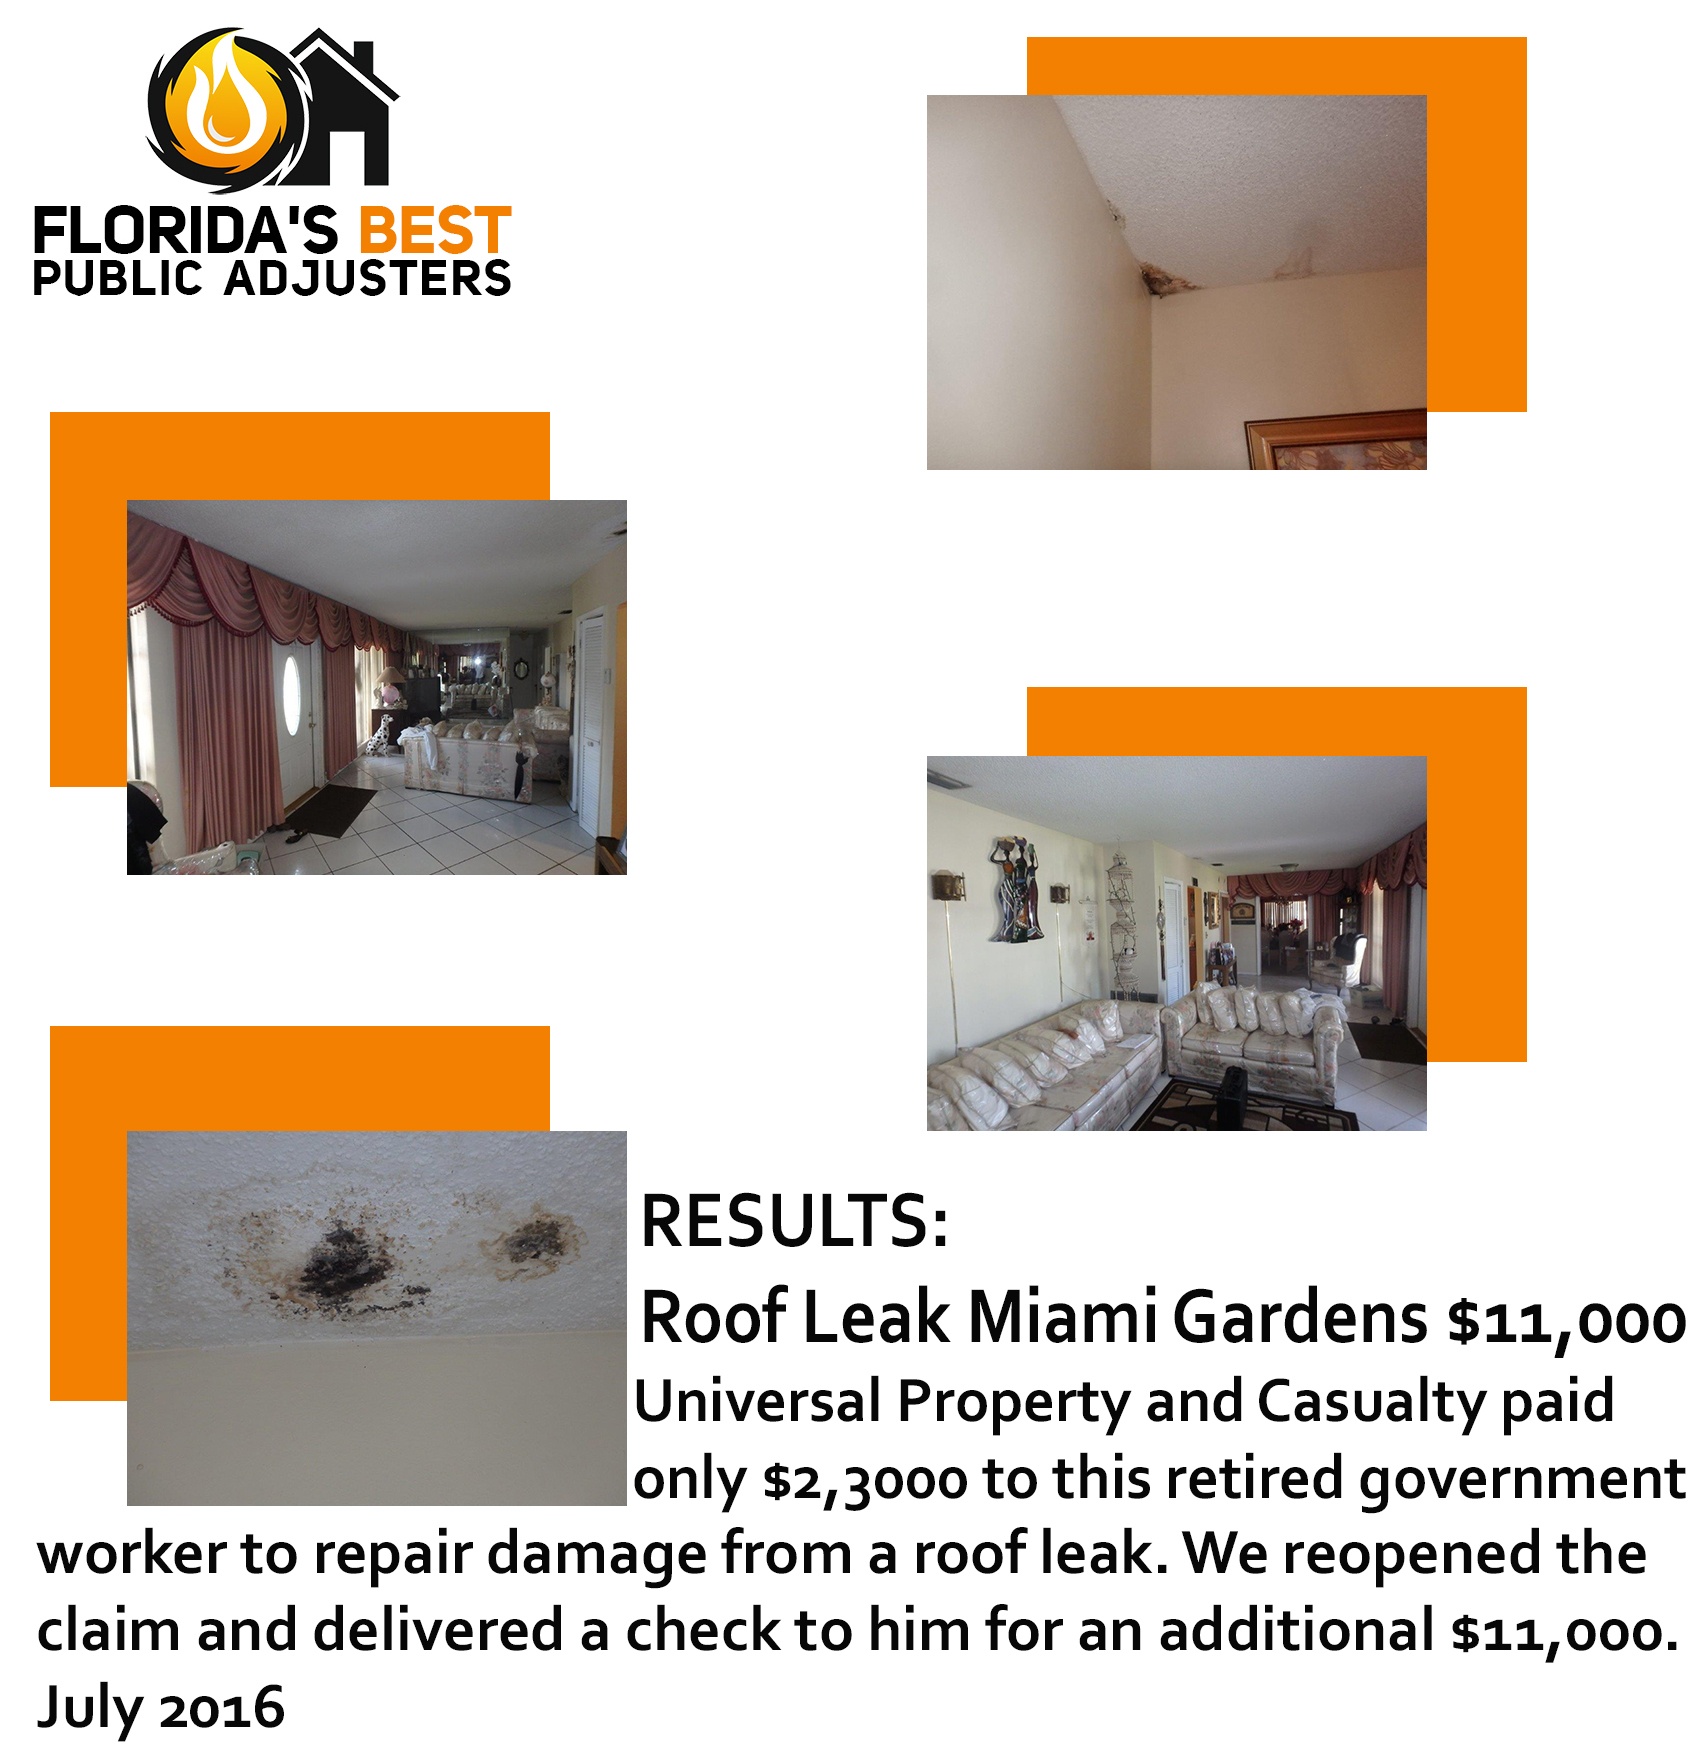 Roof Leak Miami Gardens August